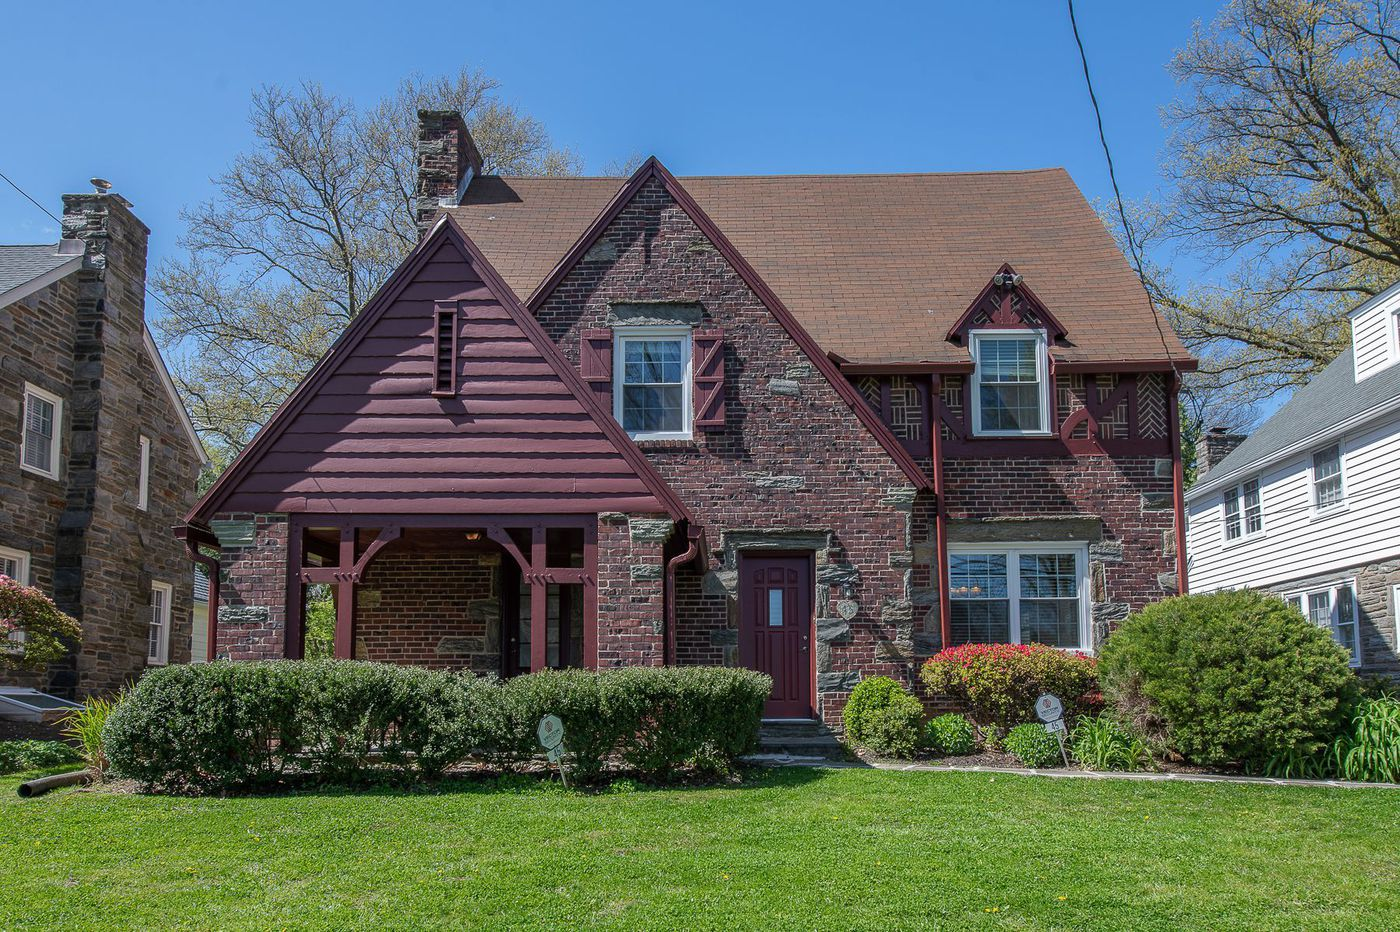 On the market: A five-bedroom brick Colonial in Bala Cynwyd for $799,000